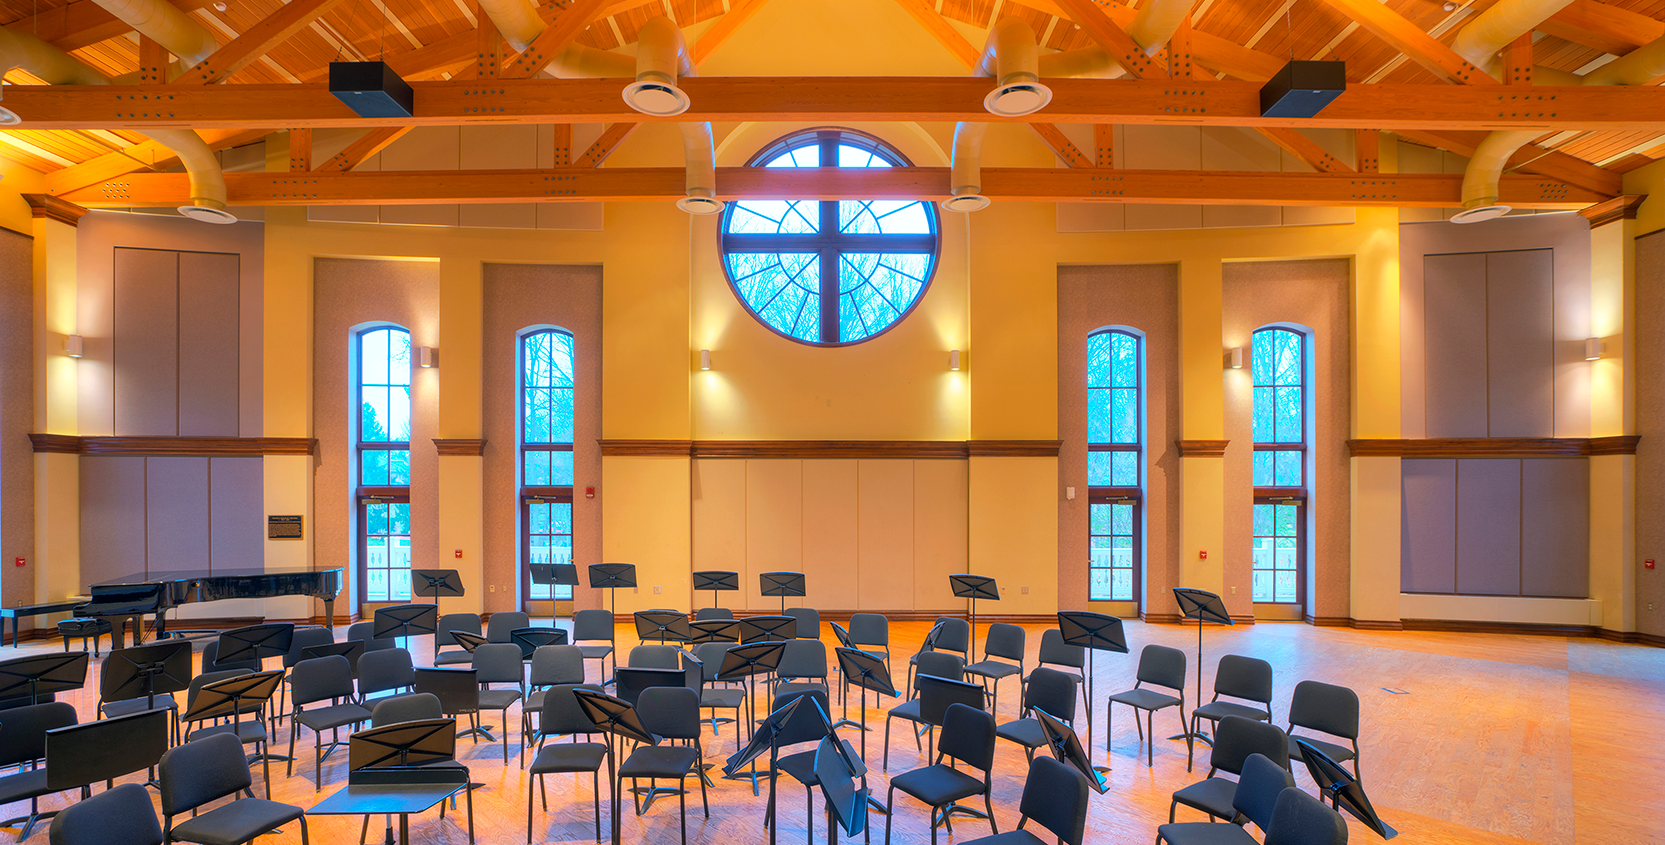 Hillsdale-College-John-and-Dede-Howard-Music-Hall-Renovation-1665x845